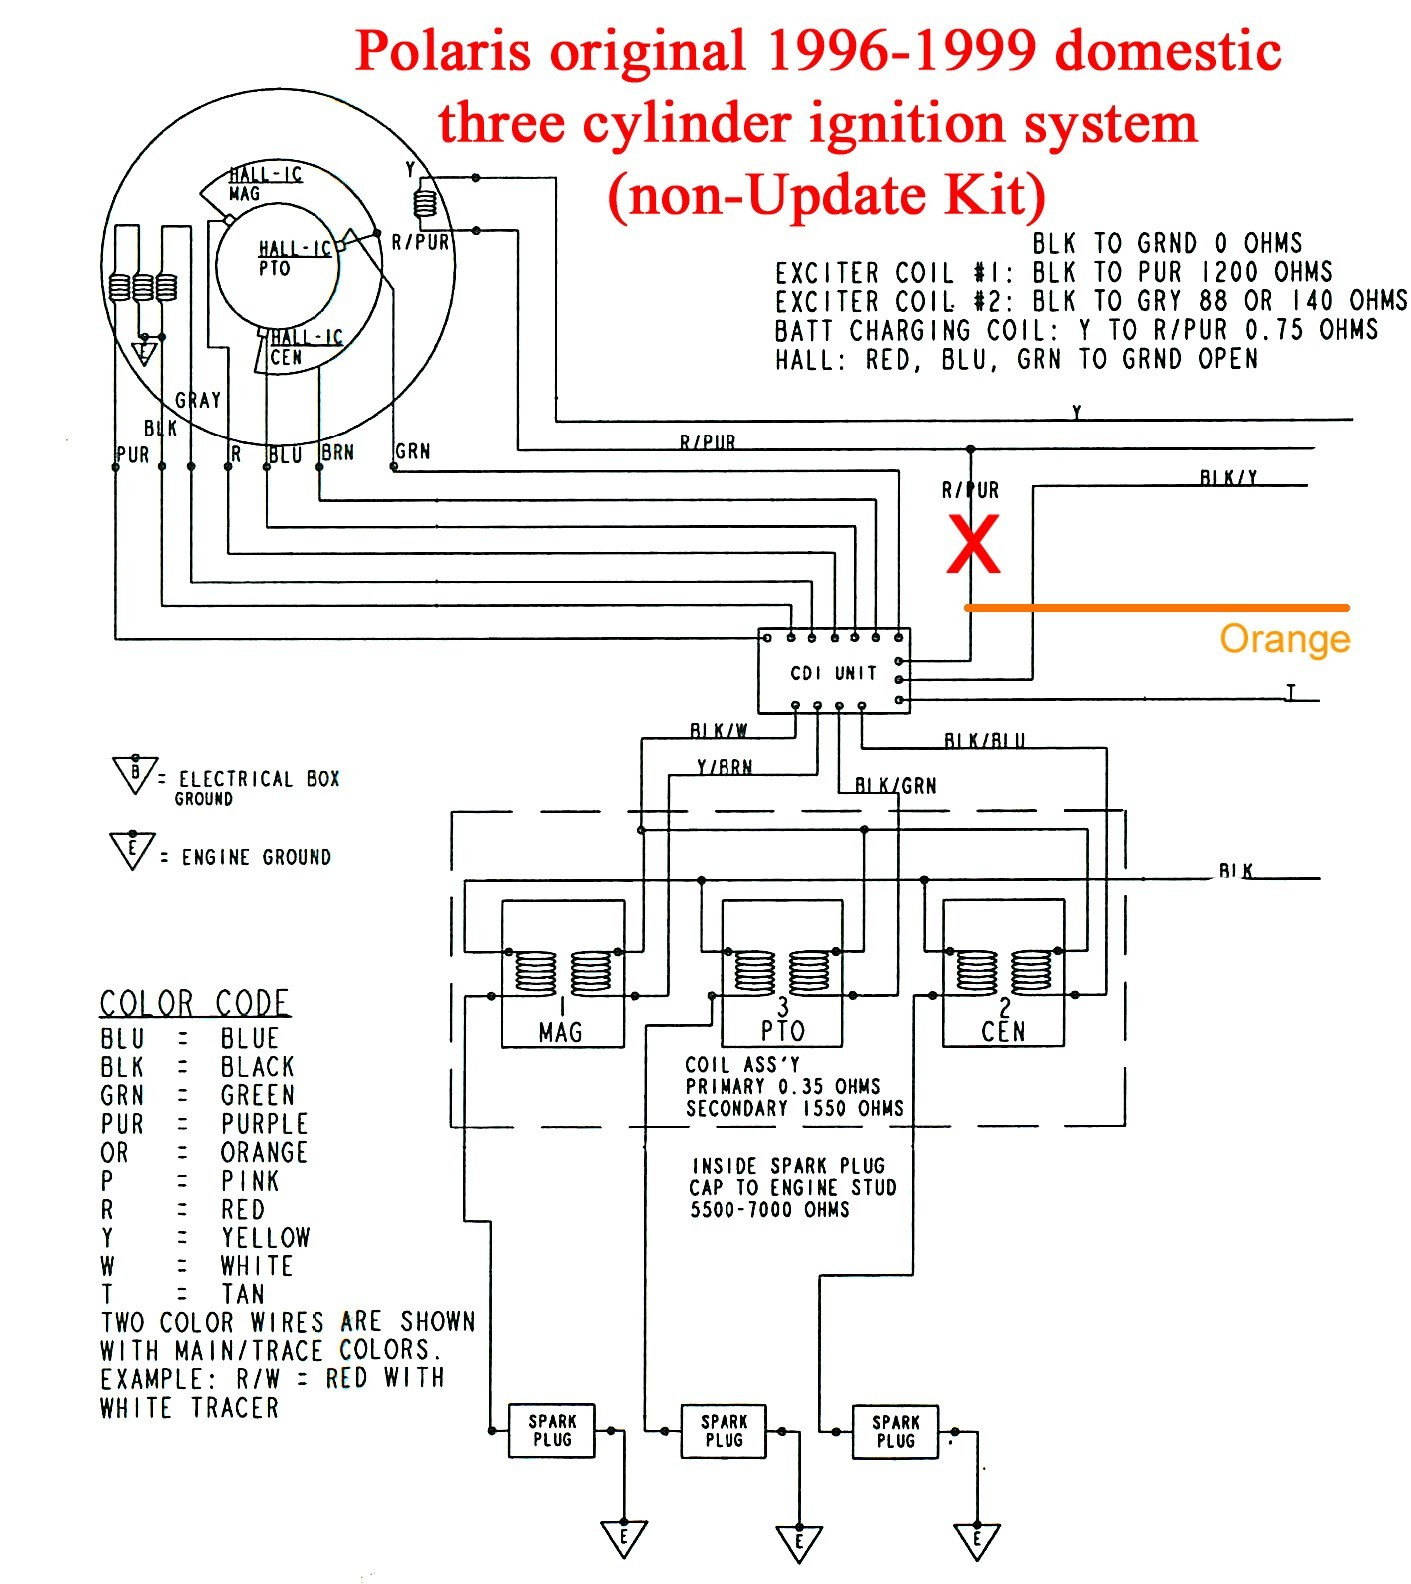 Diagram Of Coil Ignition System Car Ignition System Wiring Diagram Of Diagram Of Coil Ignition System Car Ignition System Wiring Diagram